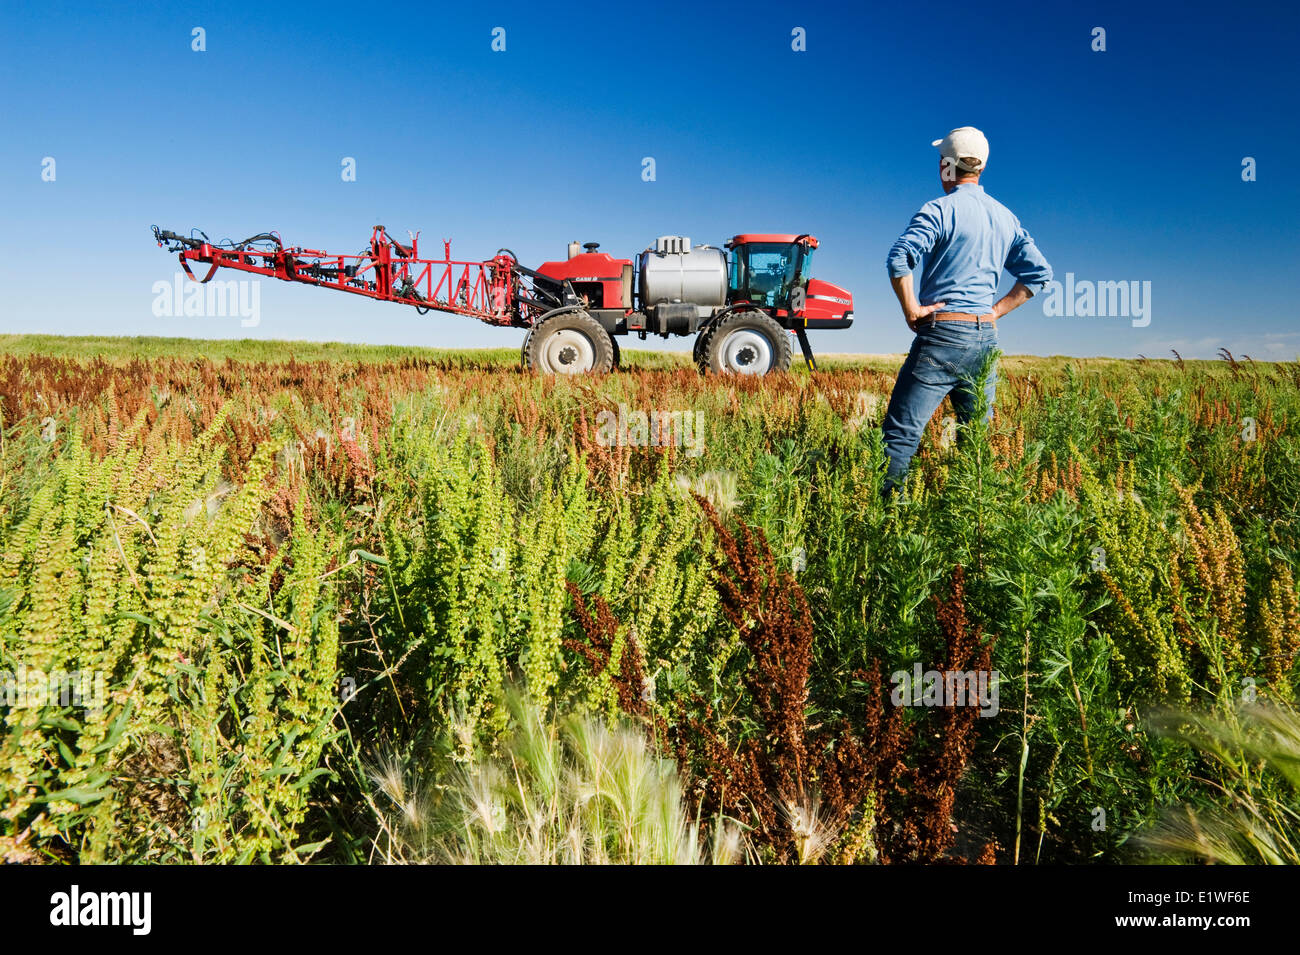 a man looks out over weeds in a field next to a high clearance sprayer, near Moreland, Saskatchewan, Canada - Stock Image